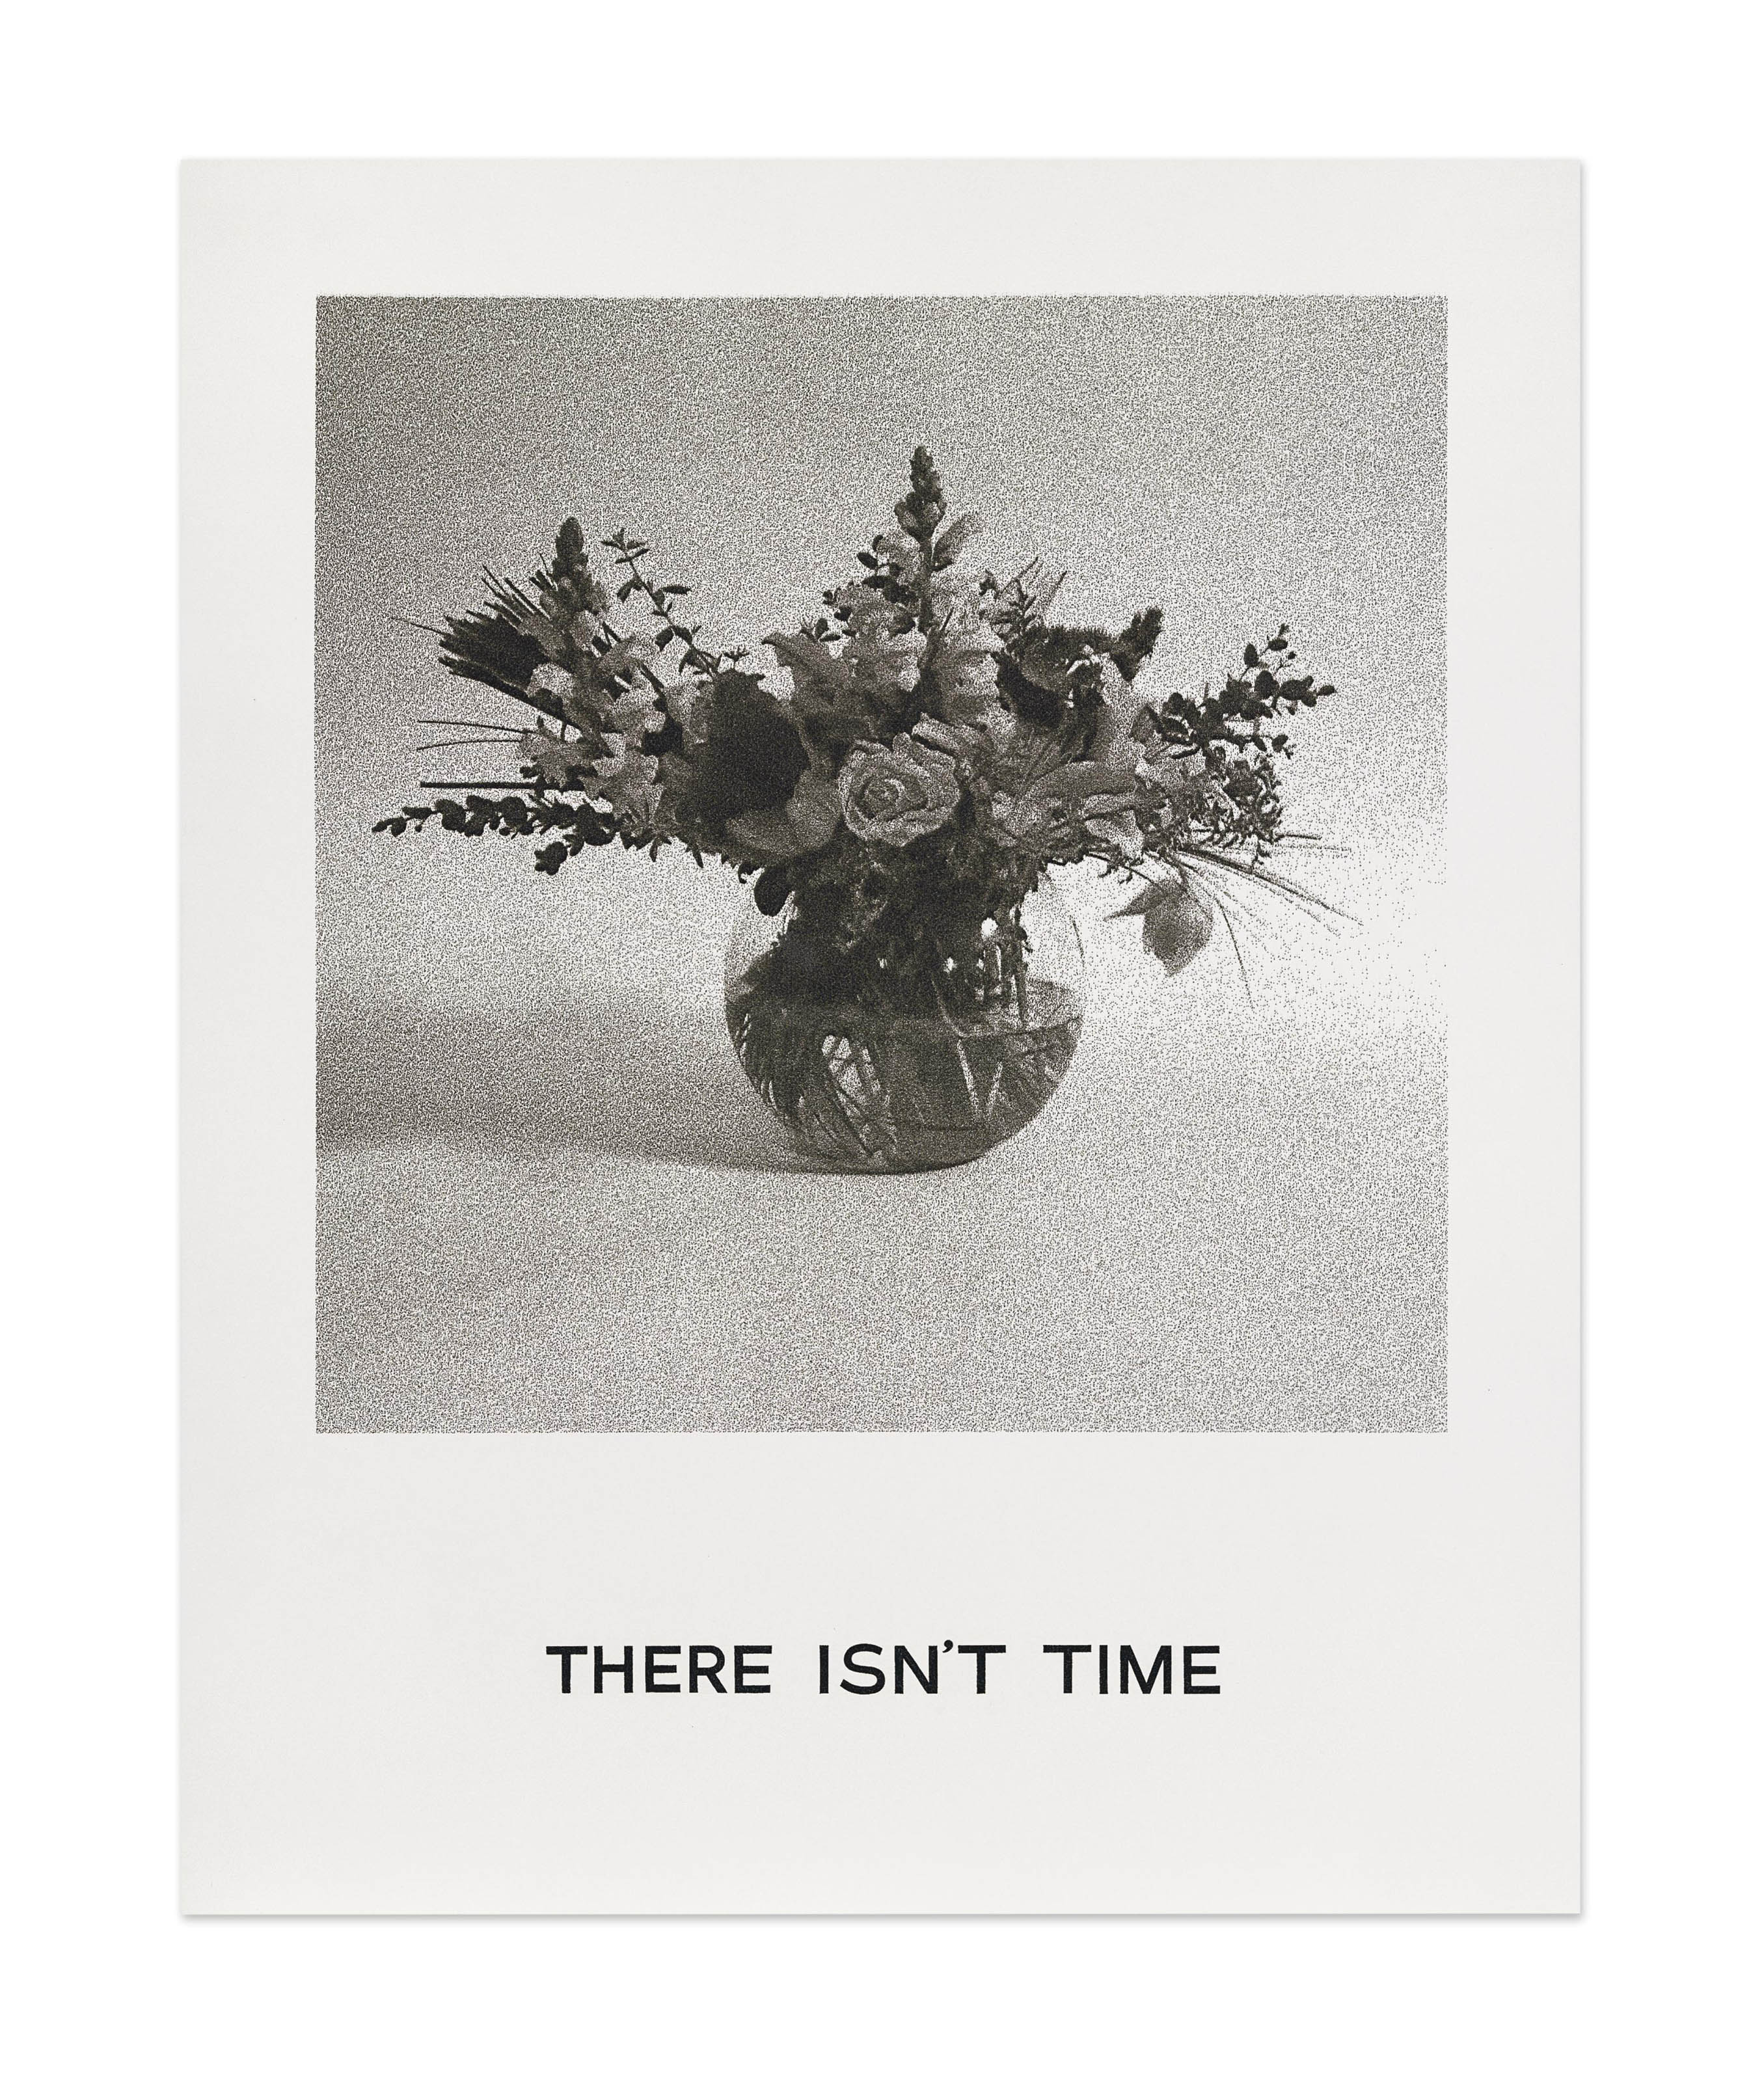 there-isnt-time-john-baldessari-arte-ekphrasis